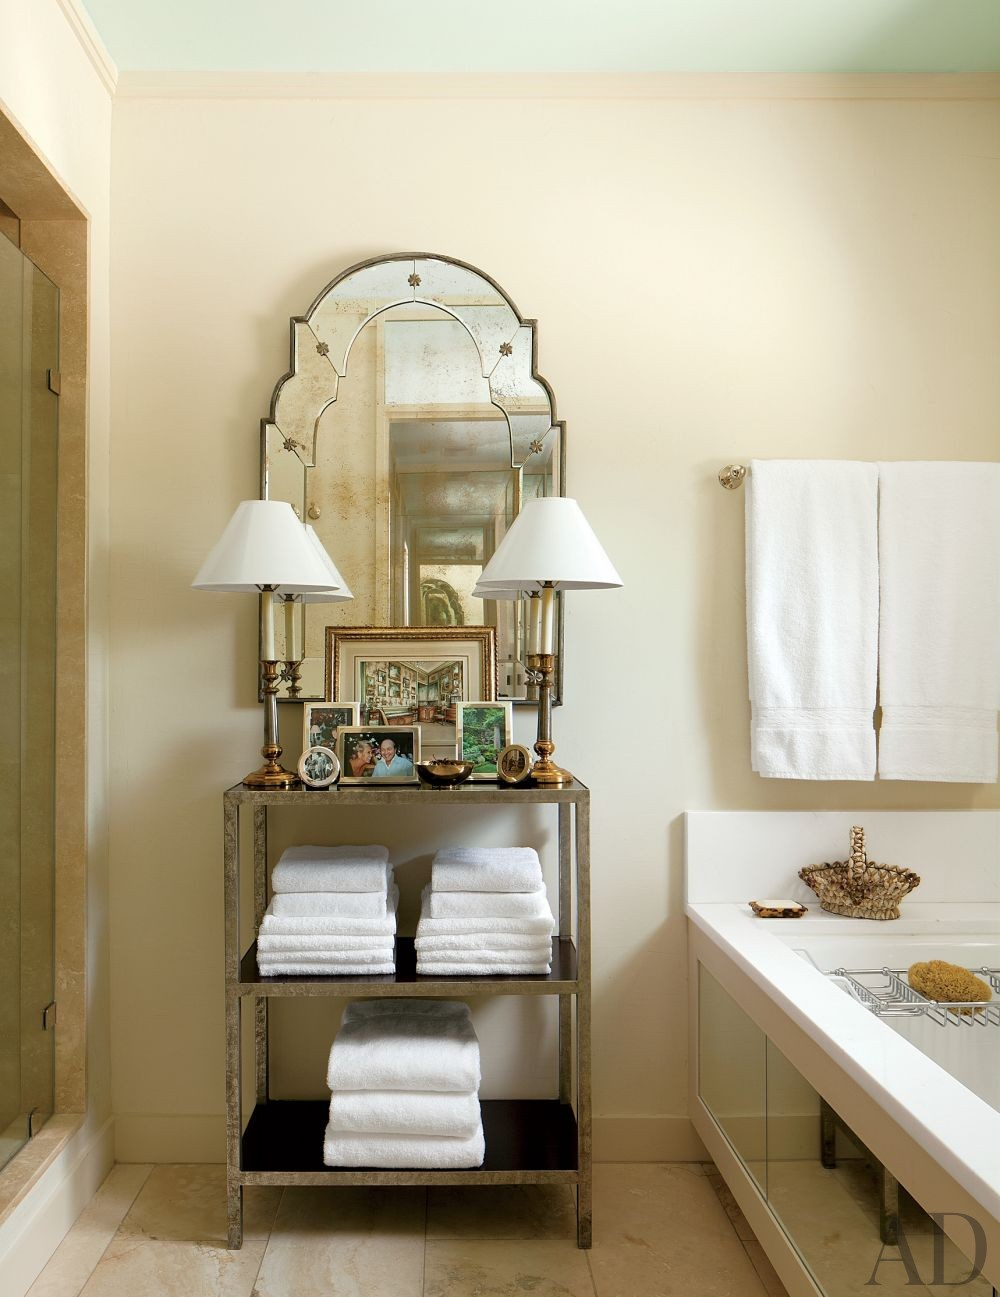 Traditional Bathroom by David Easton Inc. in Tulsa, Oklahoma